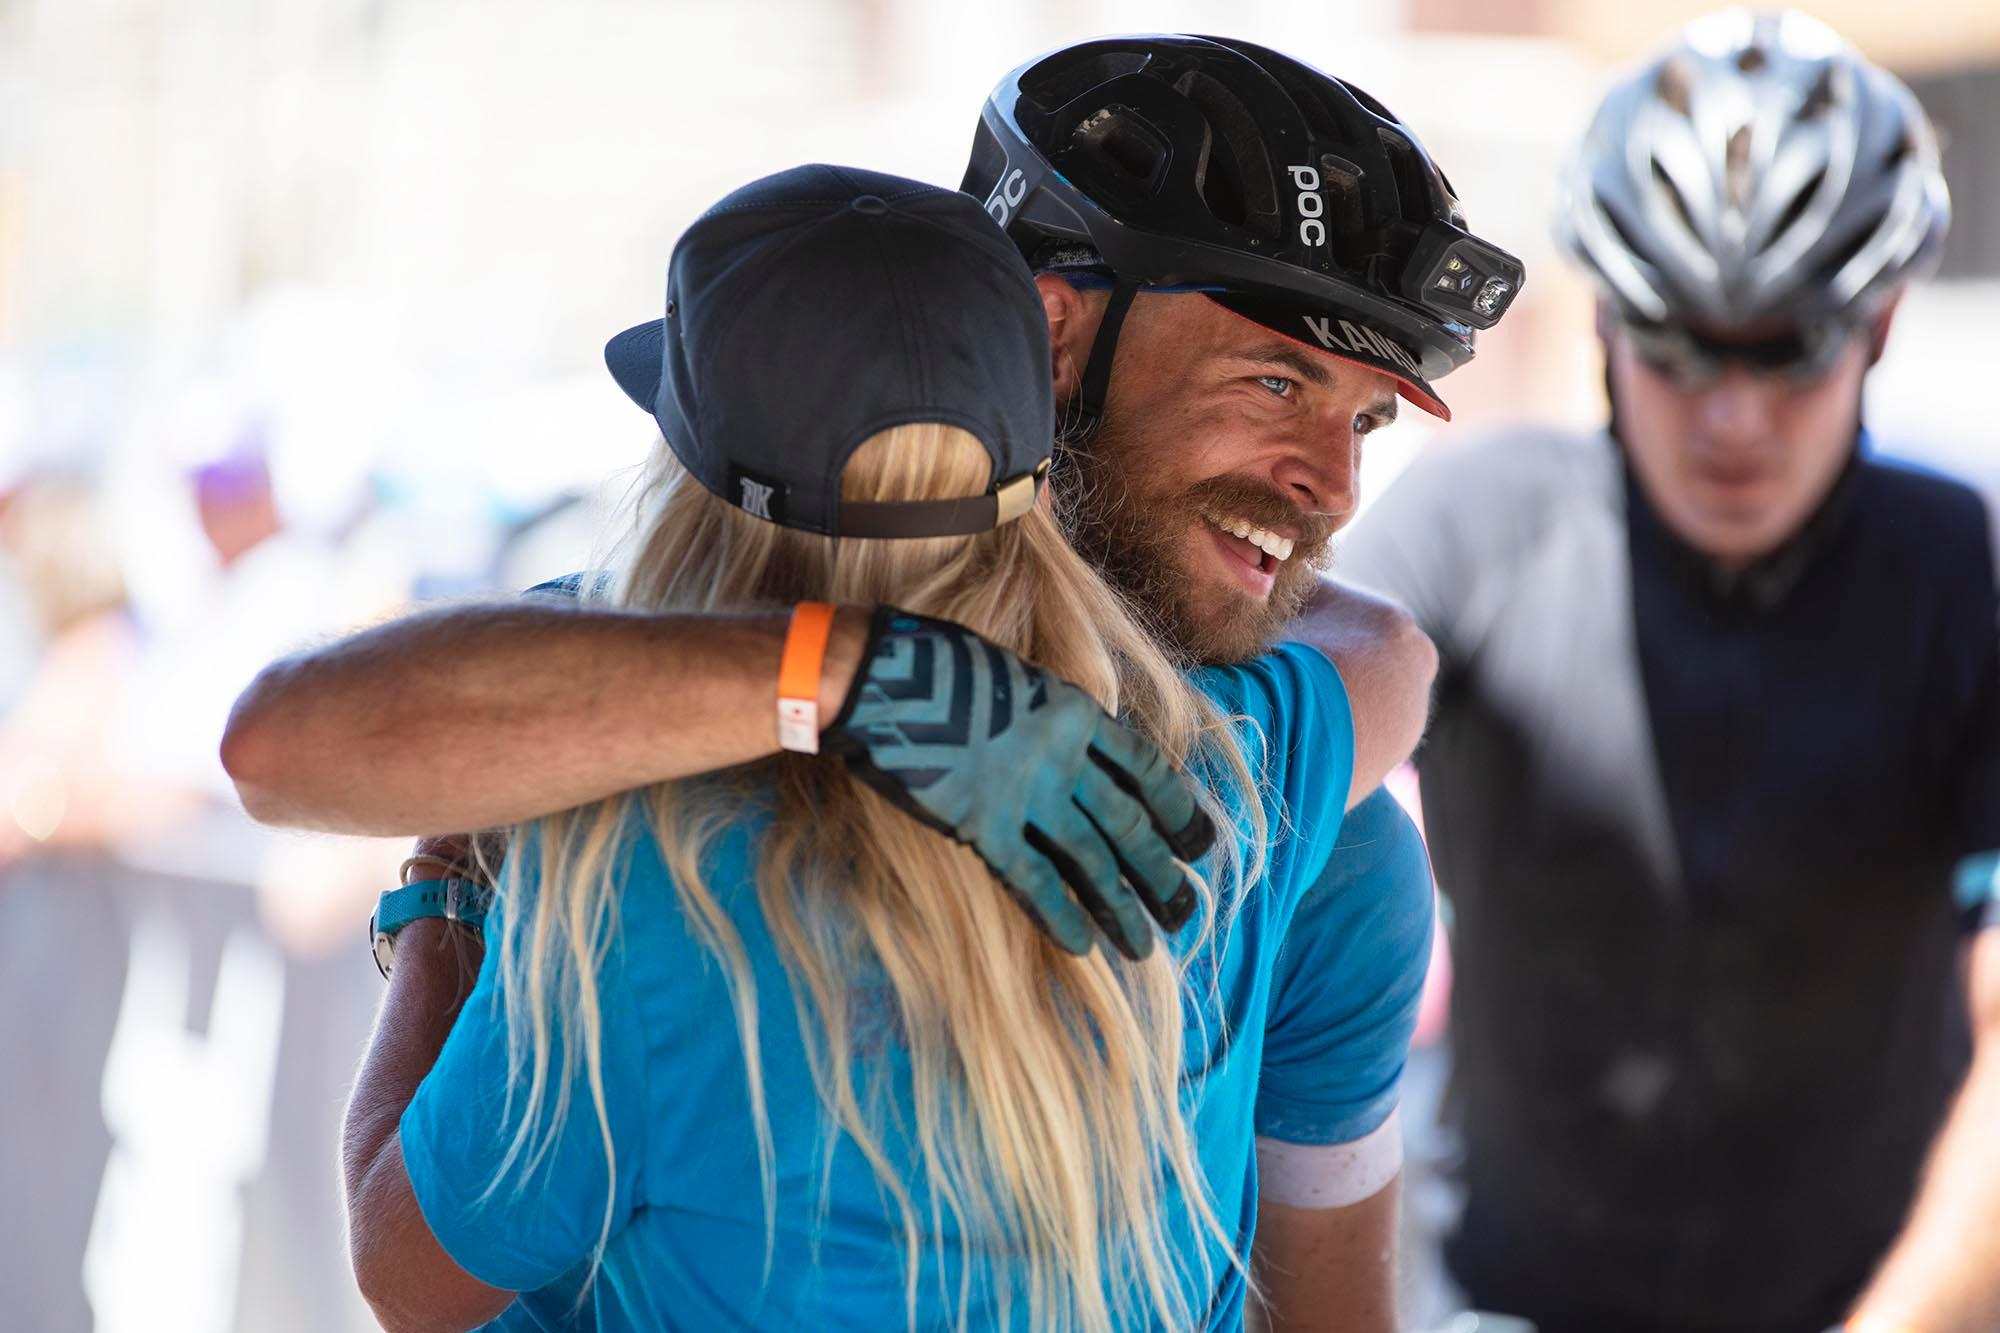 Andrew Strempke hugs Kristi Mohn at the finish of the DKXL 2019. Strempke came in fourth place with a time of 23:35:27. (Rugile Kaladyte)